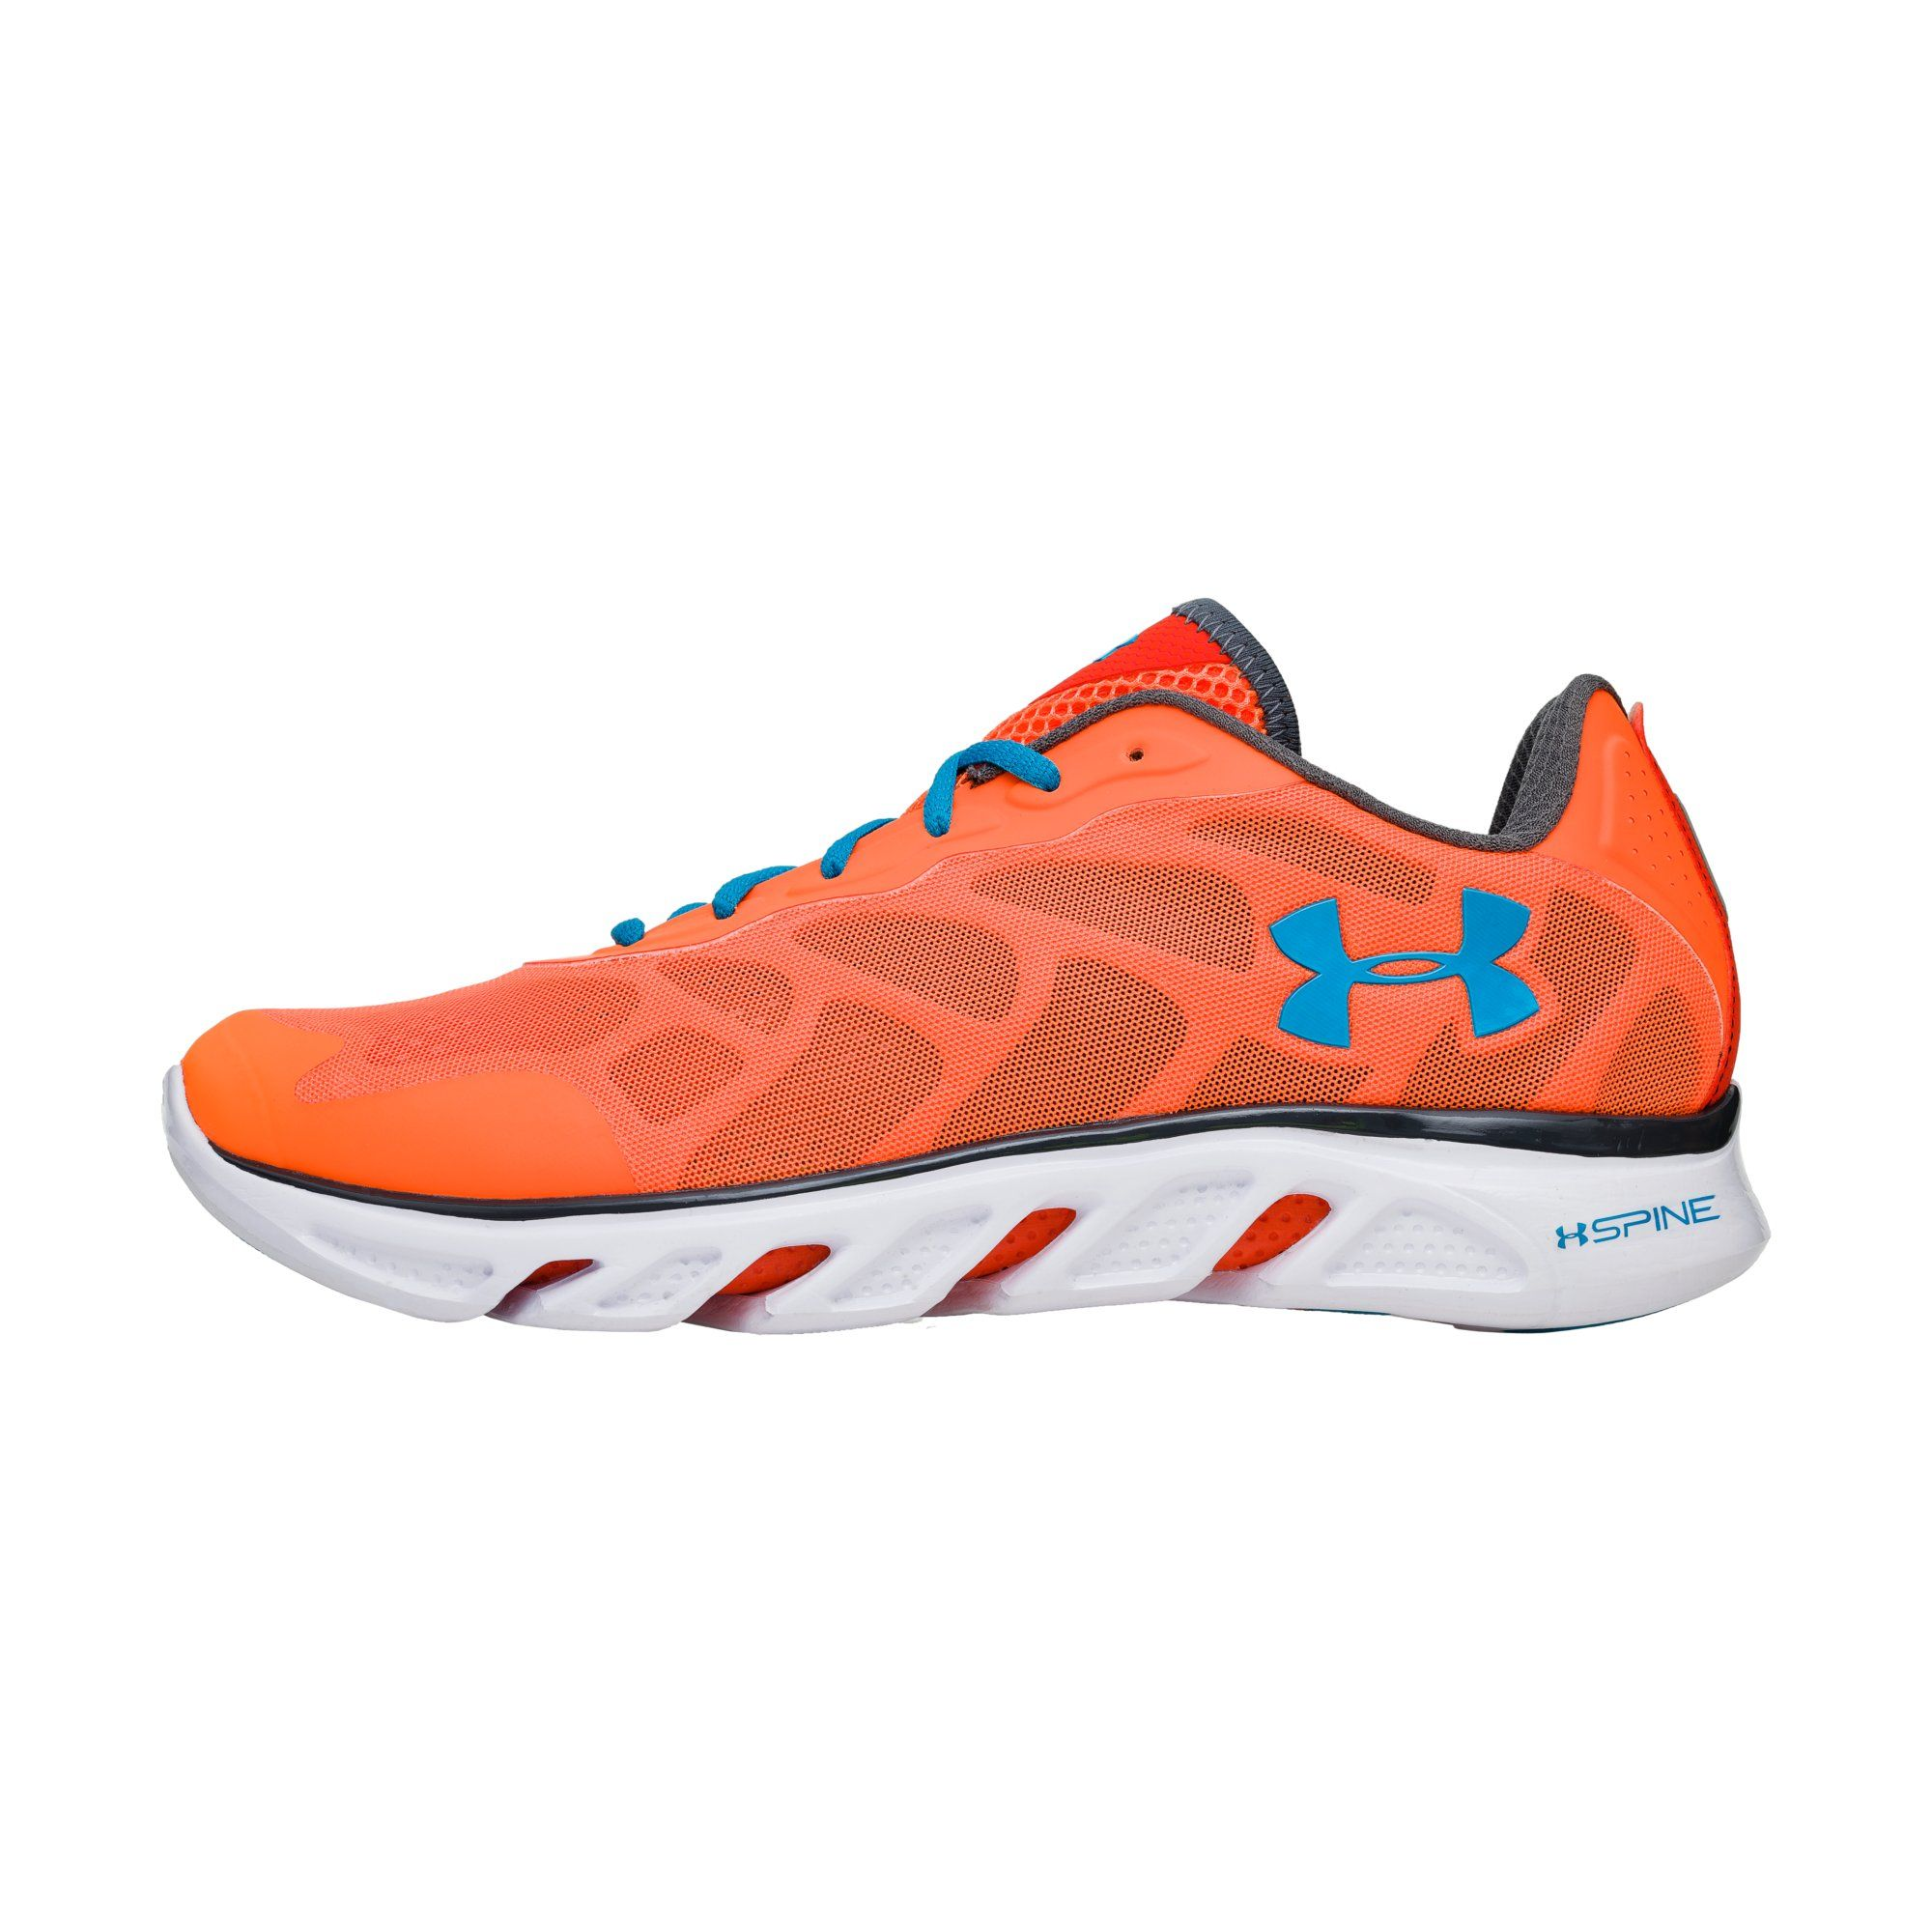 Under Armour Orange Running Shoes